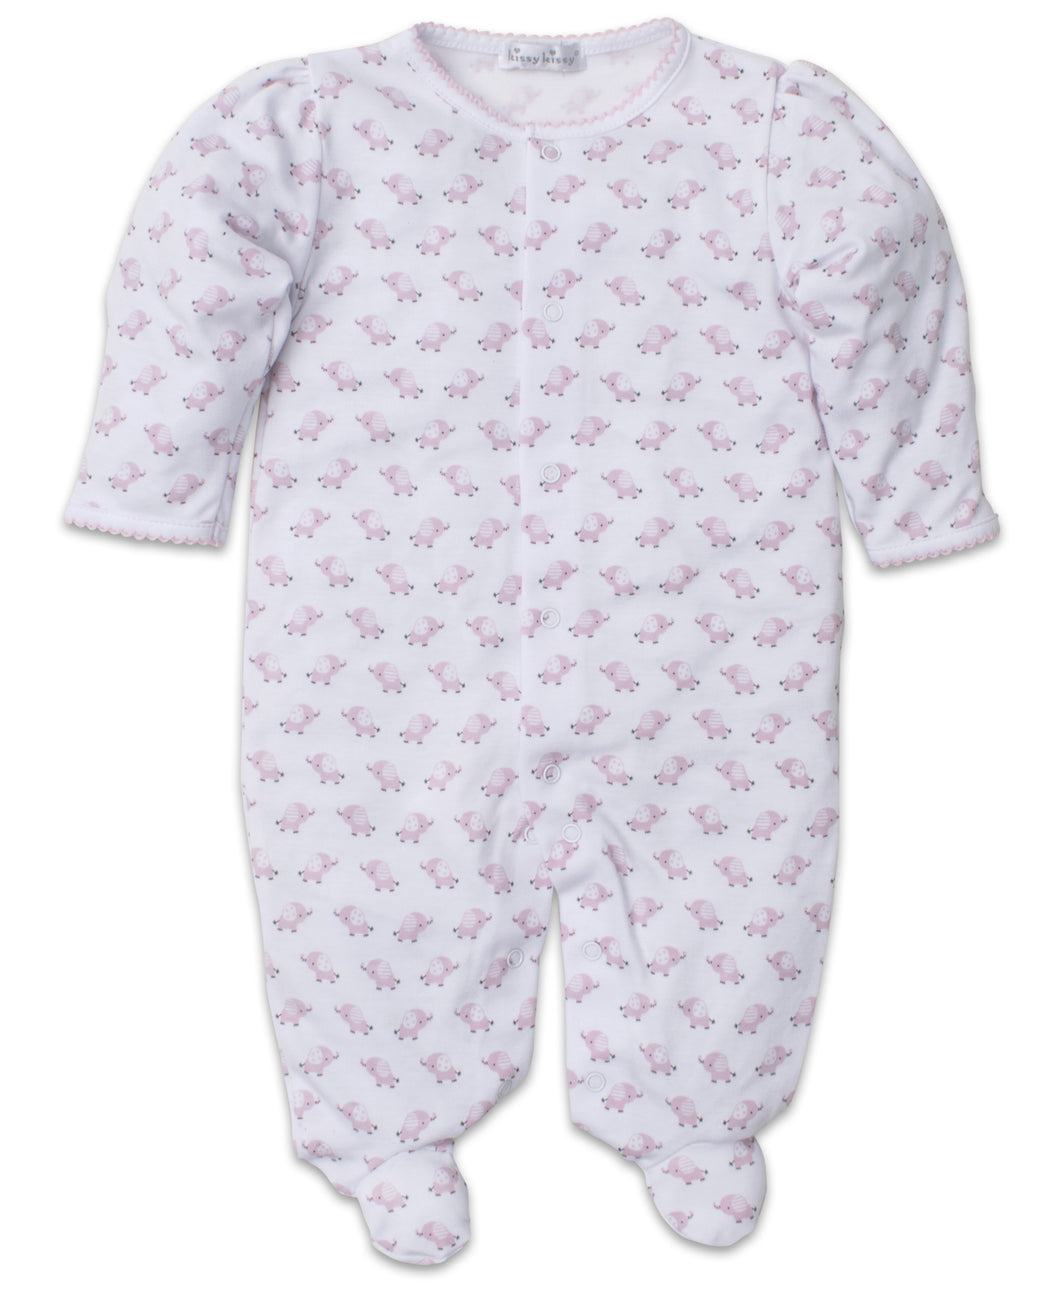 Baby Trunks Footie - Pink